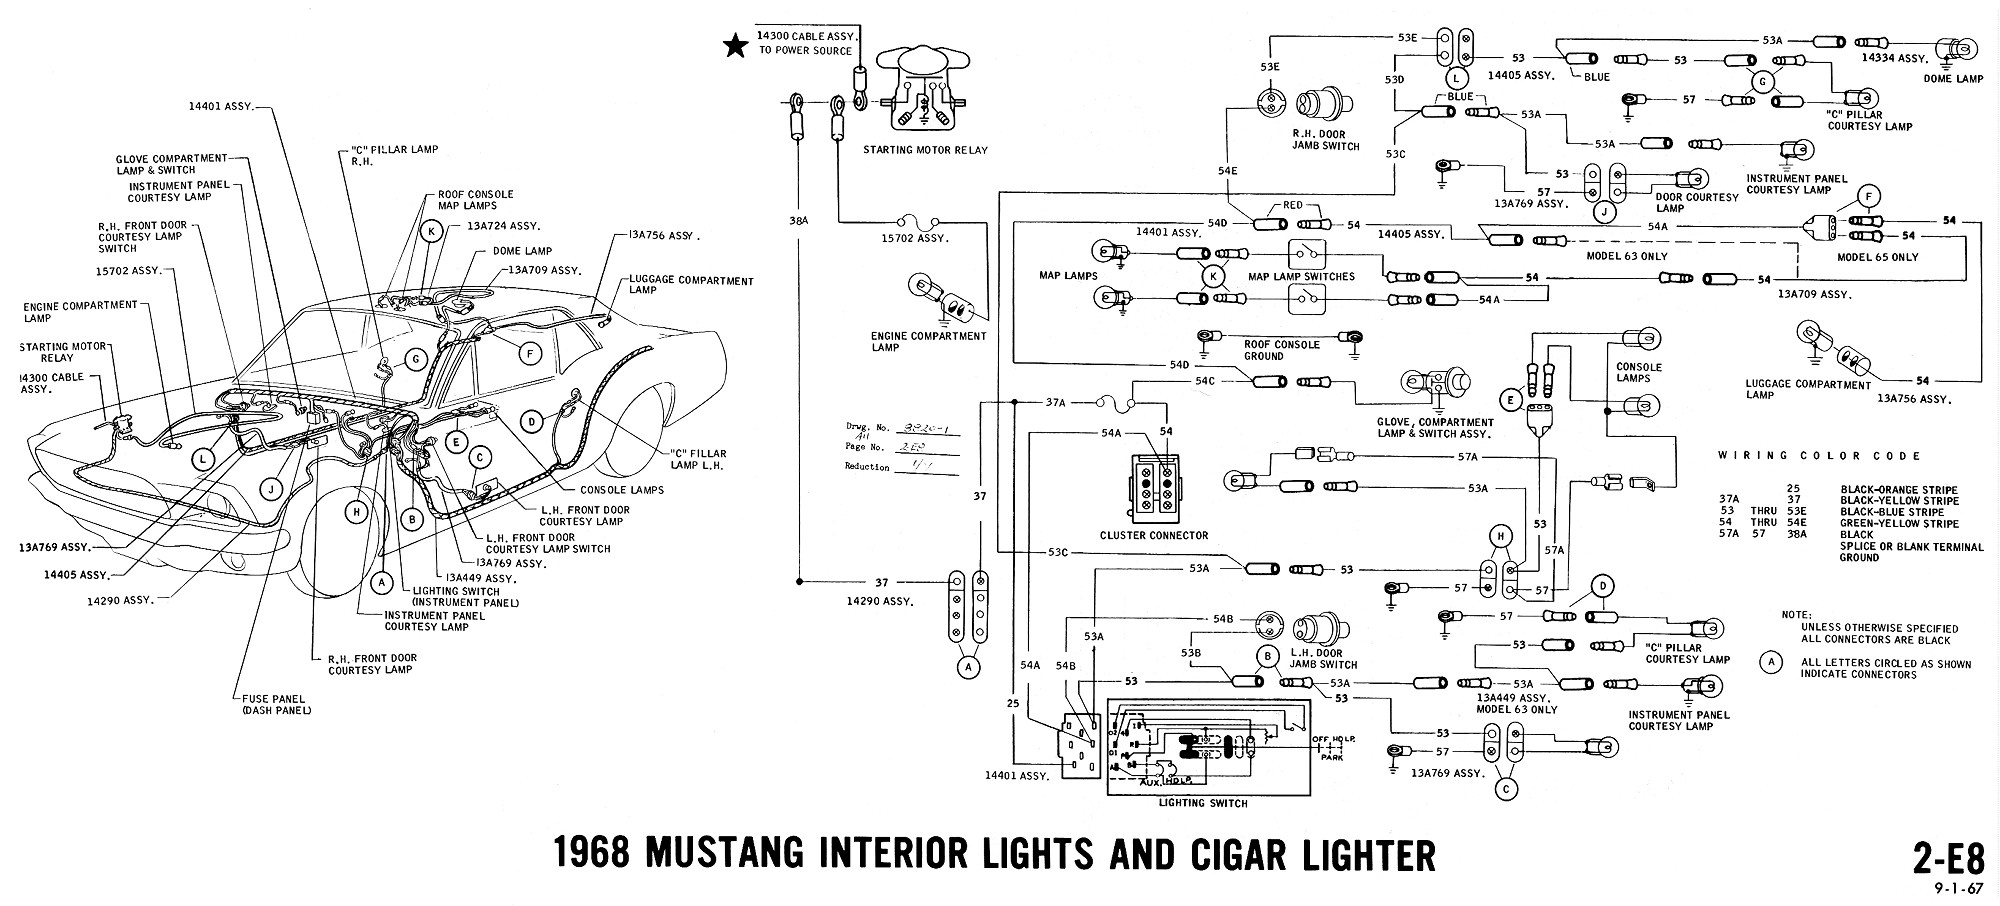 1968 mustang wiring schematic technical diagrams 1968 mustang turn signal wiring diagram